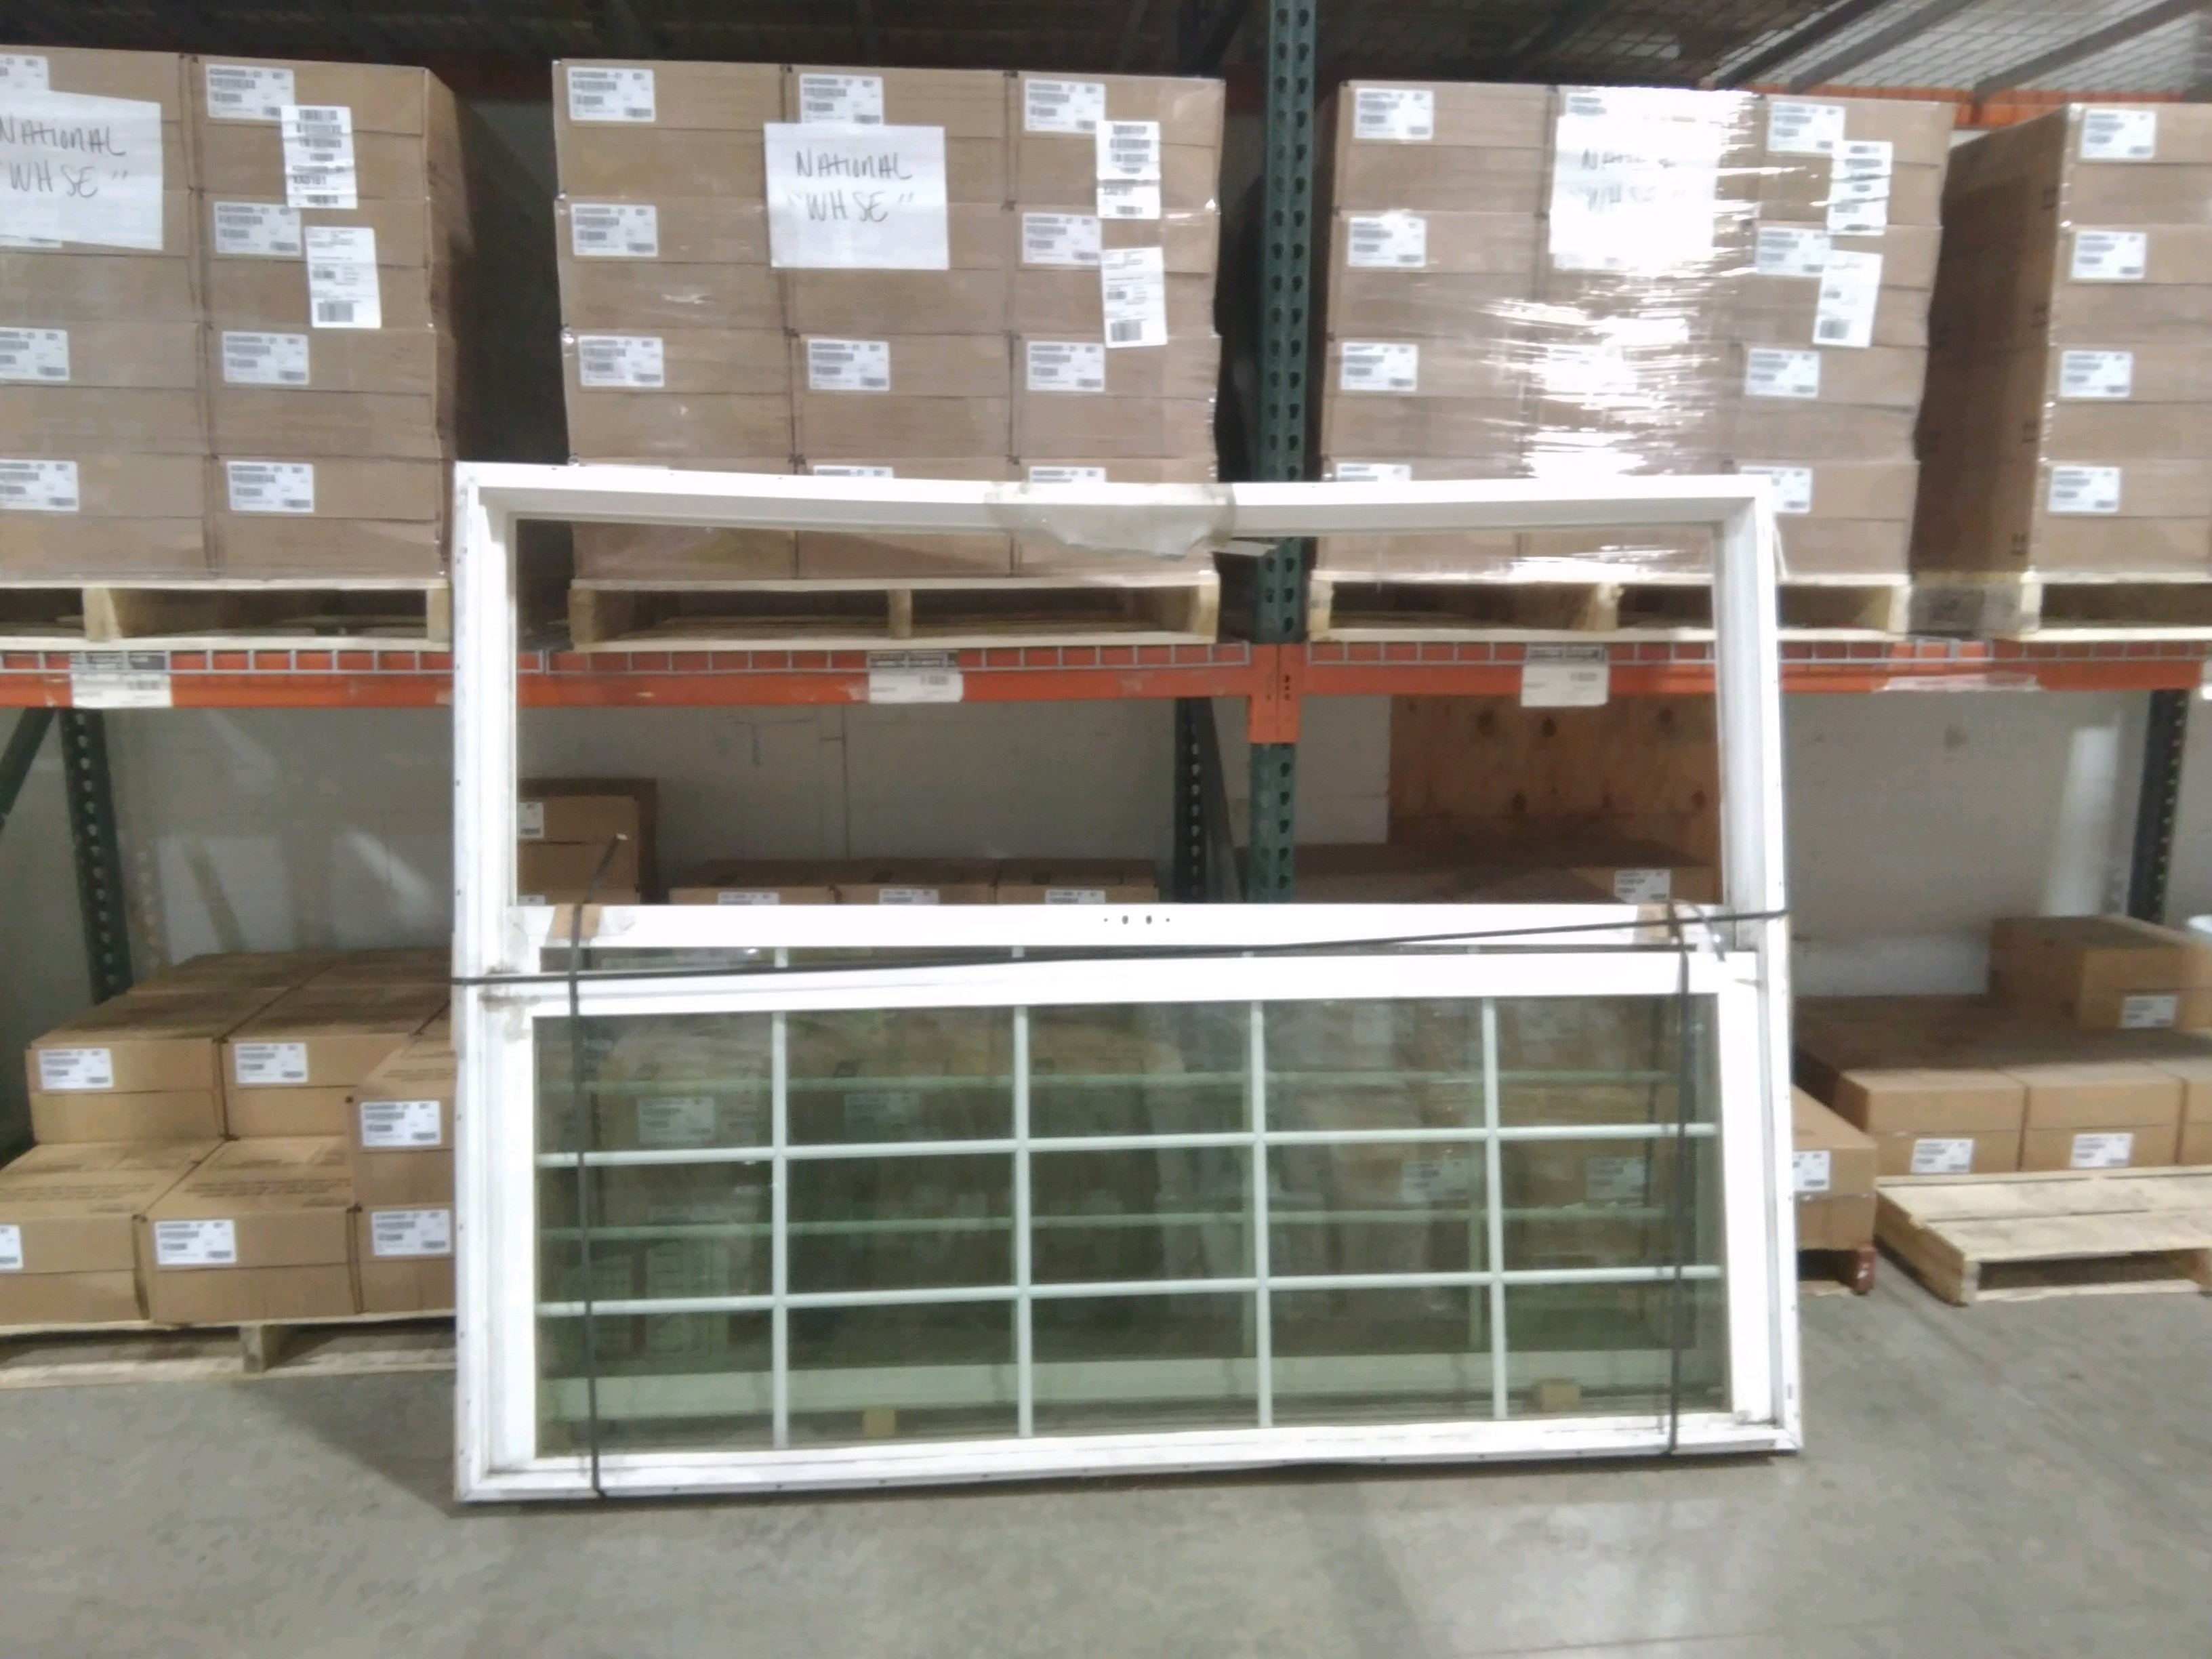 Ext 5-0x6-8 Sliding Door 3W5H RH Active